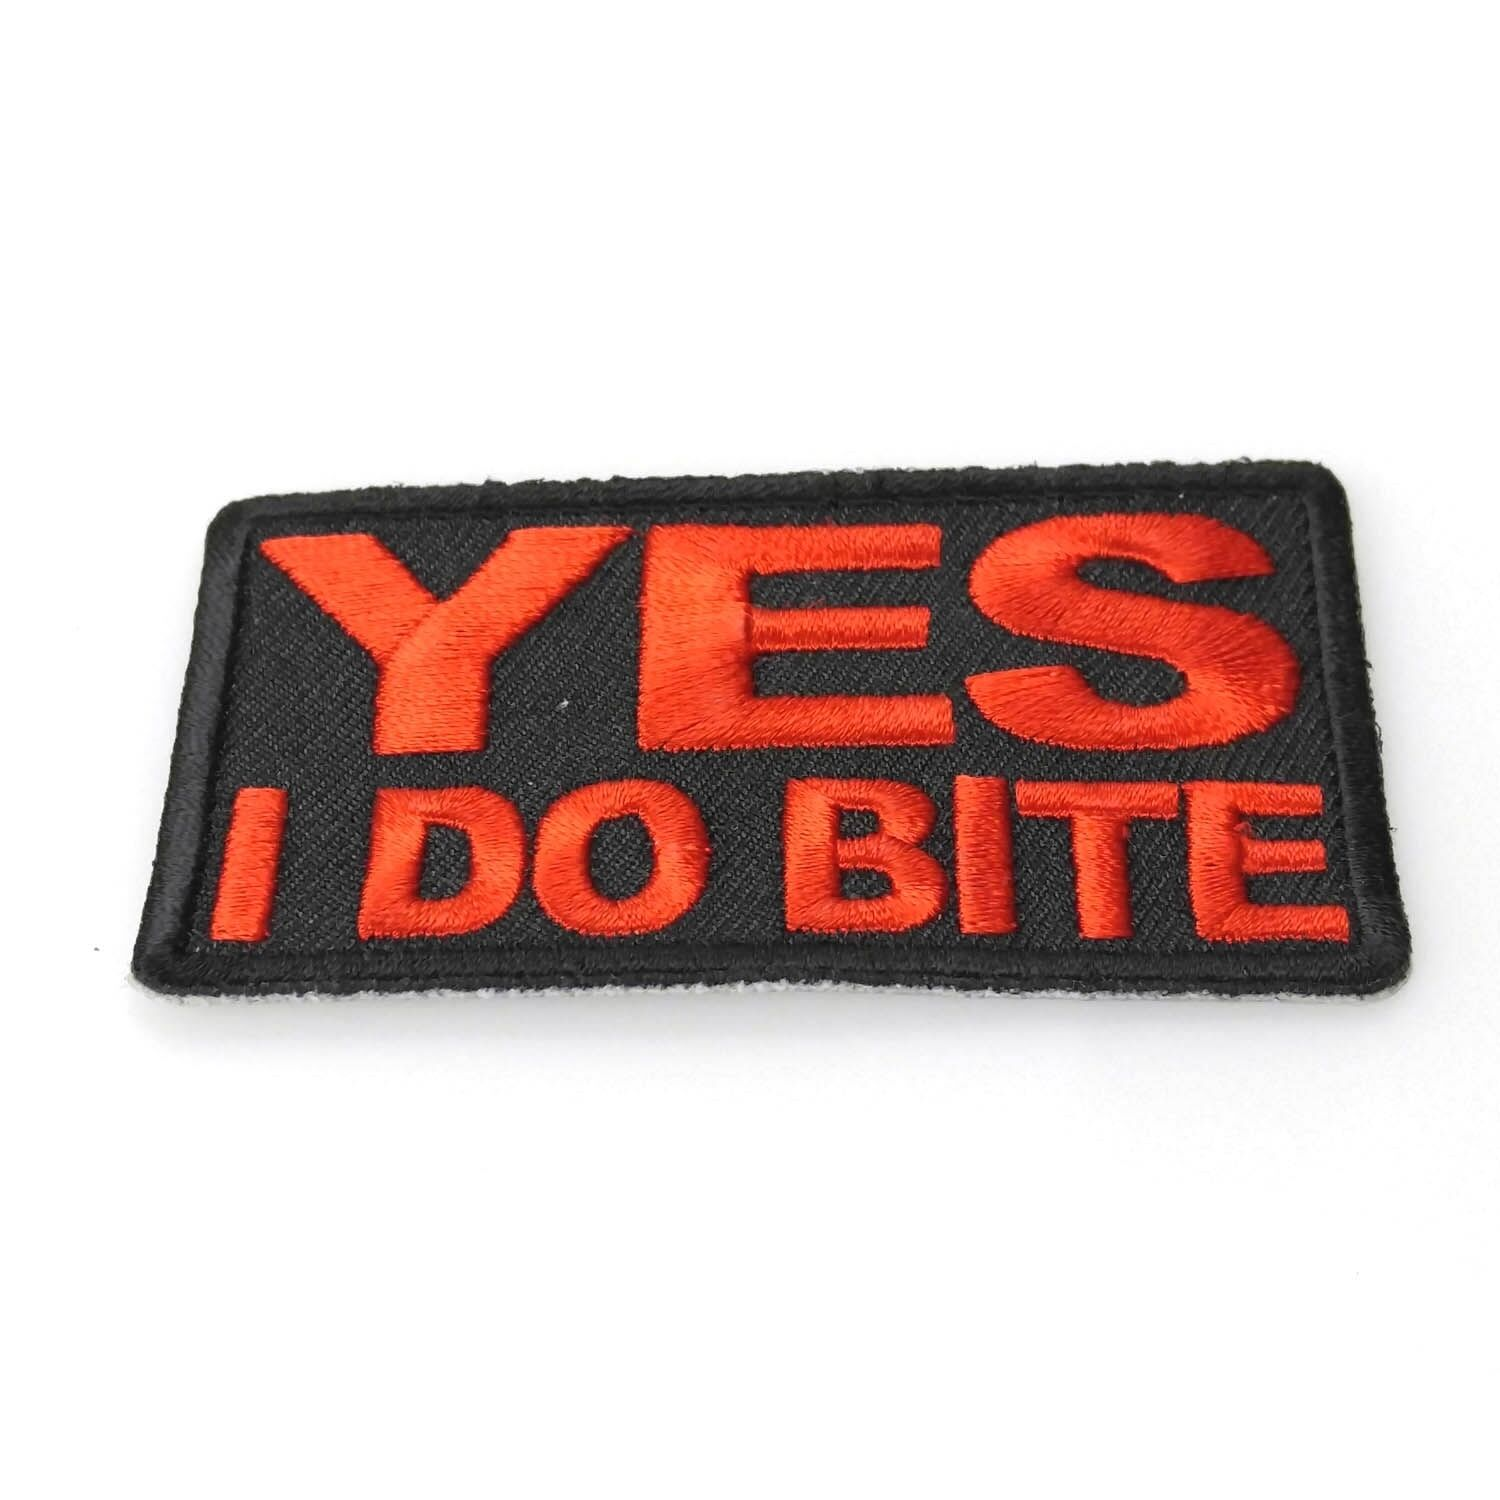 Iron On// Sew On Embroidered Patch Badge Yes I Do Bite